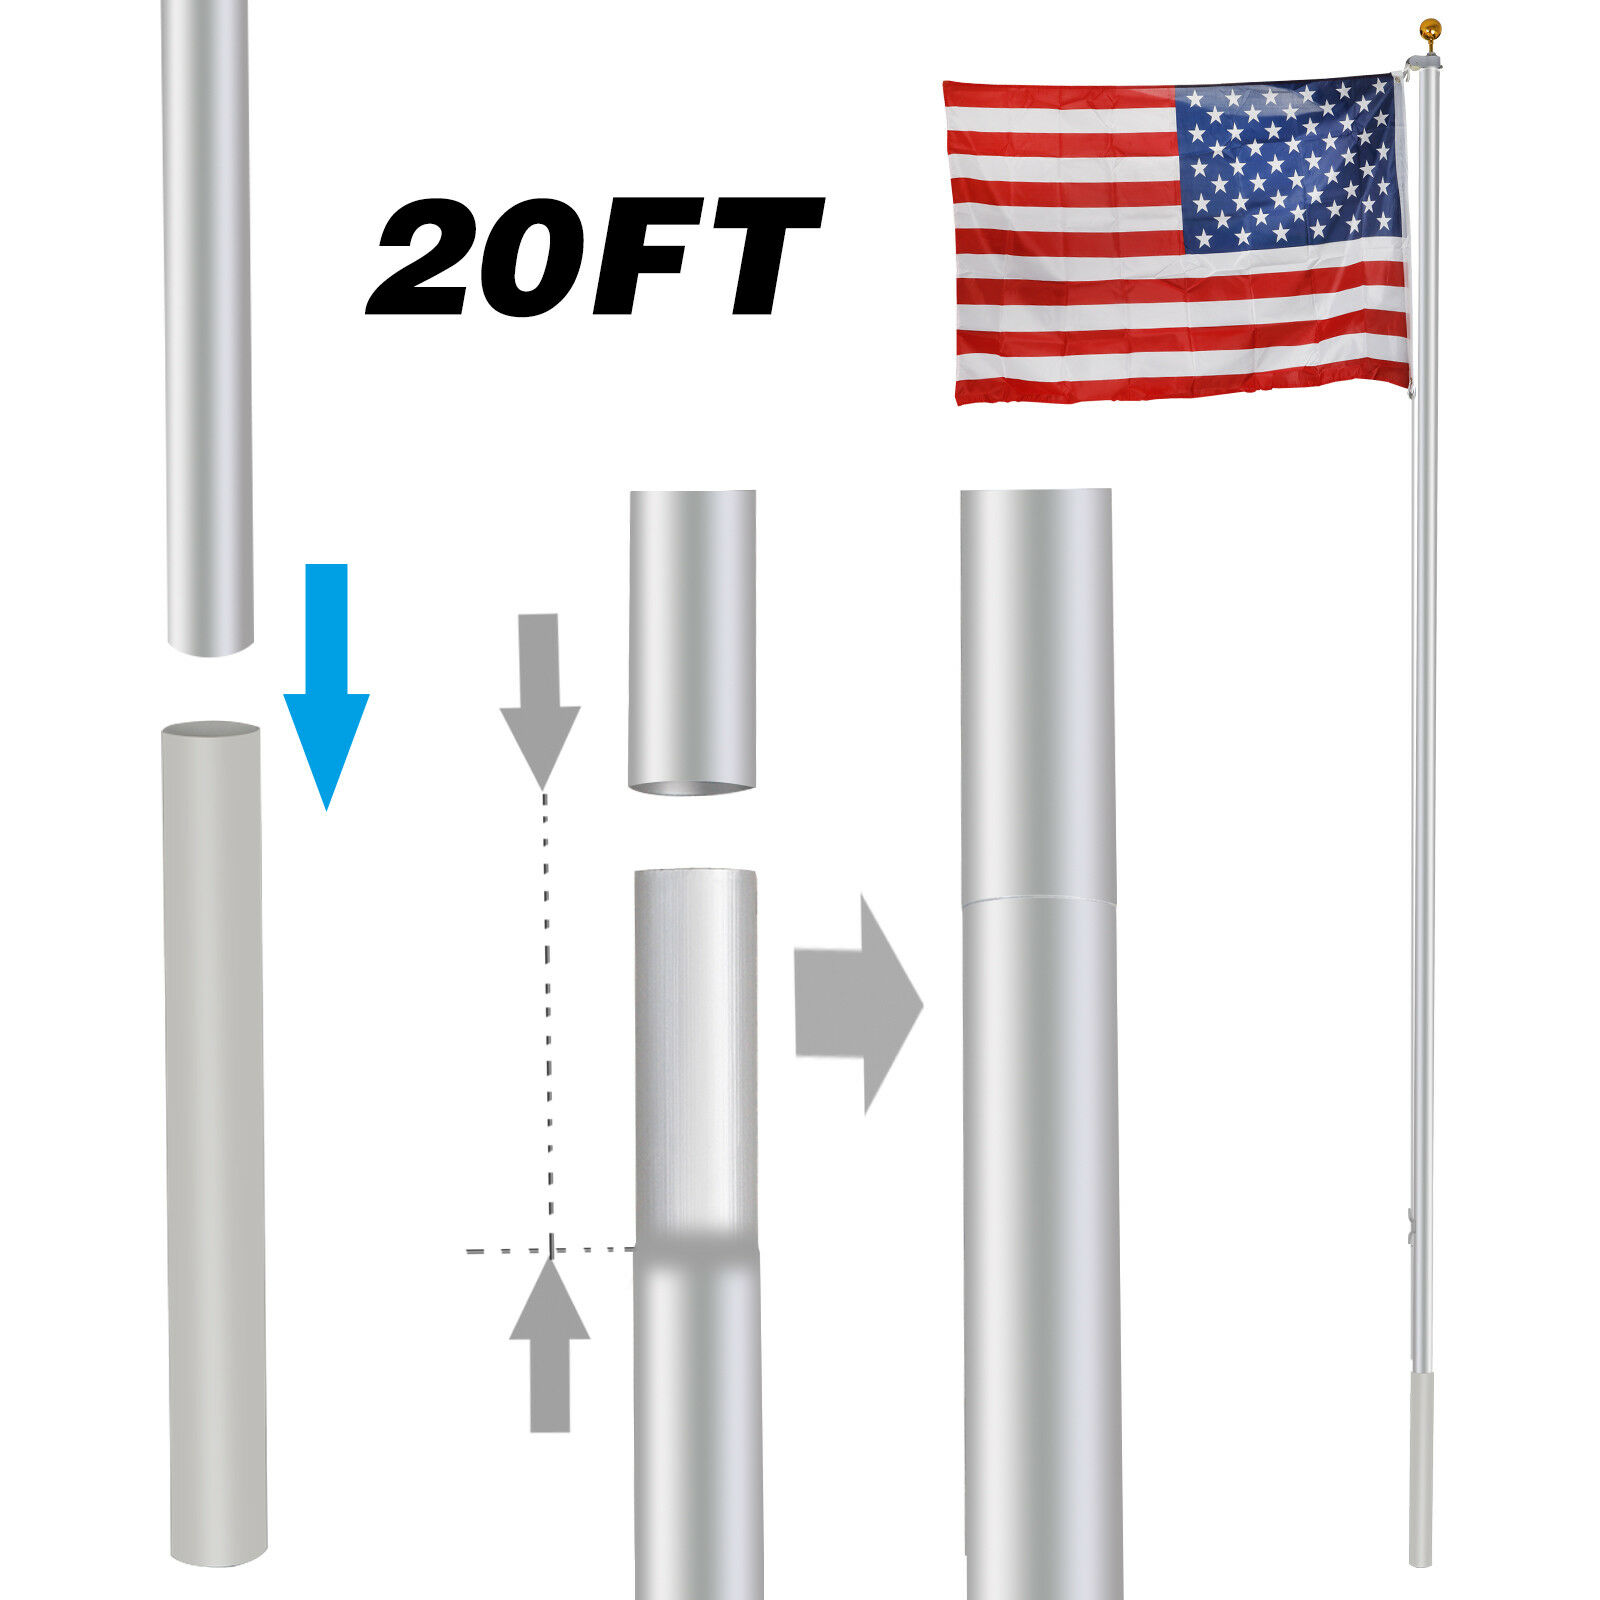 3'x5' US Flag Kit with 20-Foot Flag Pole Halyard Aluminum In